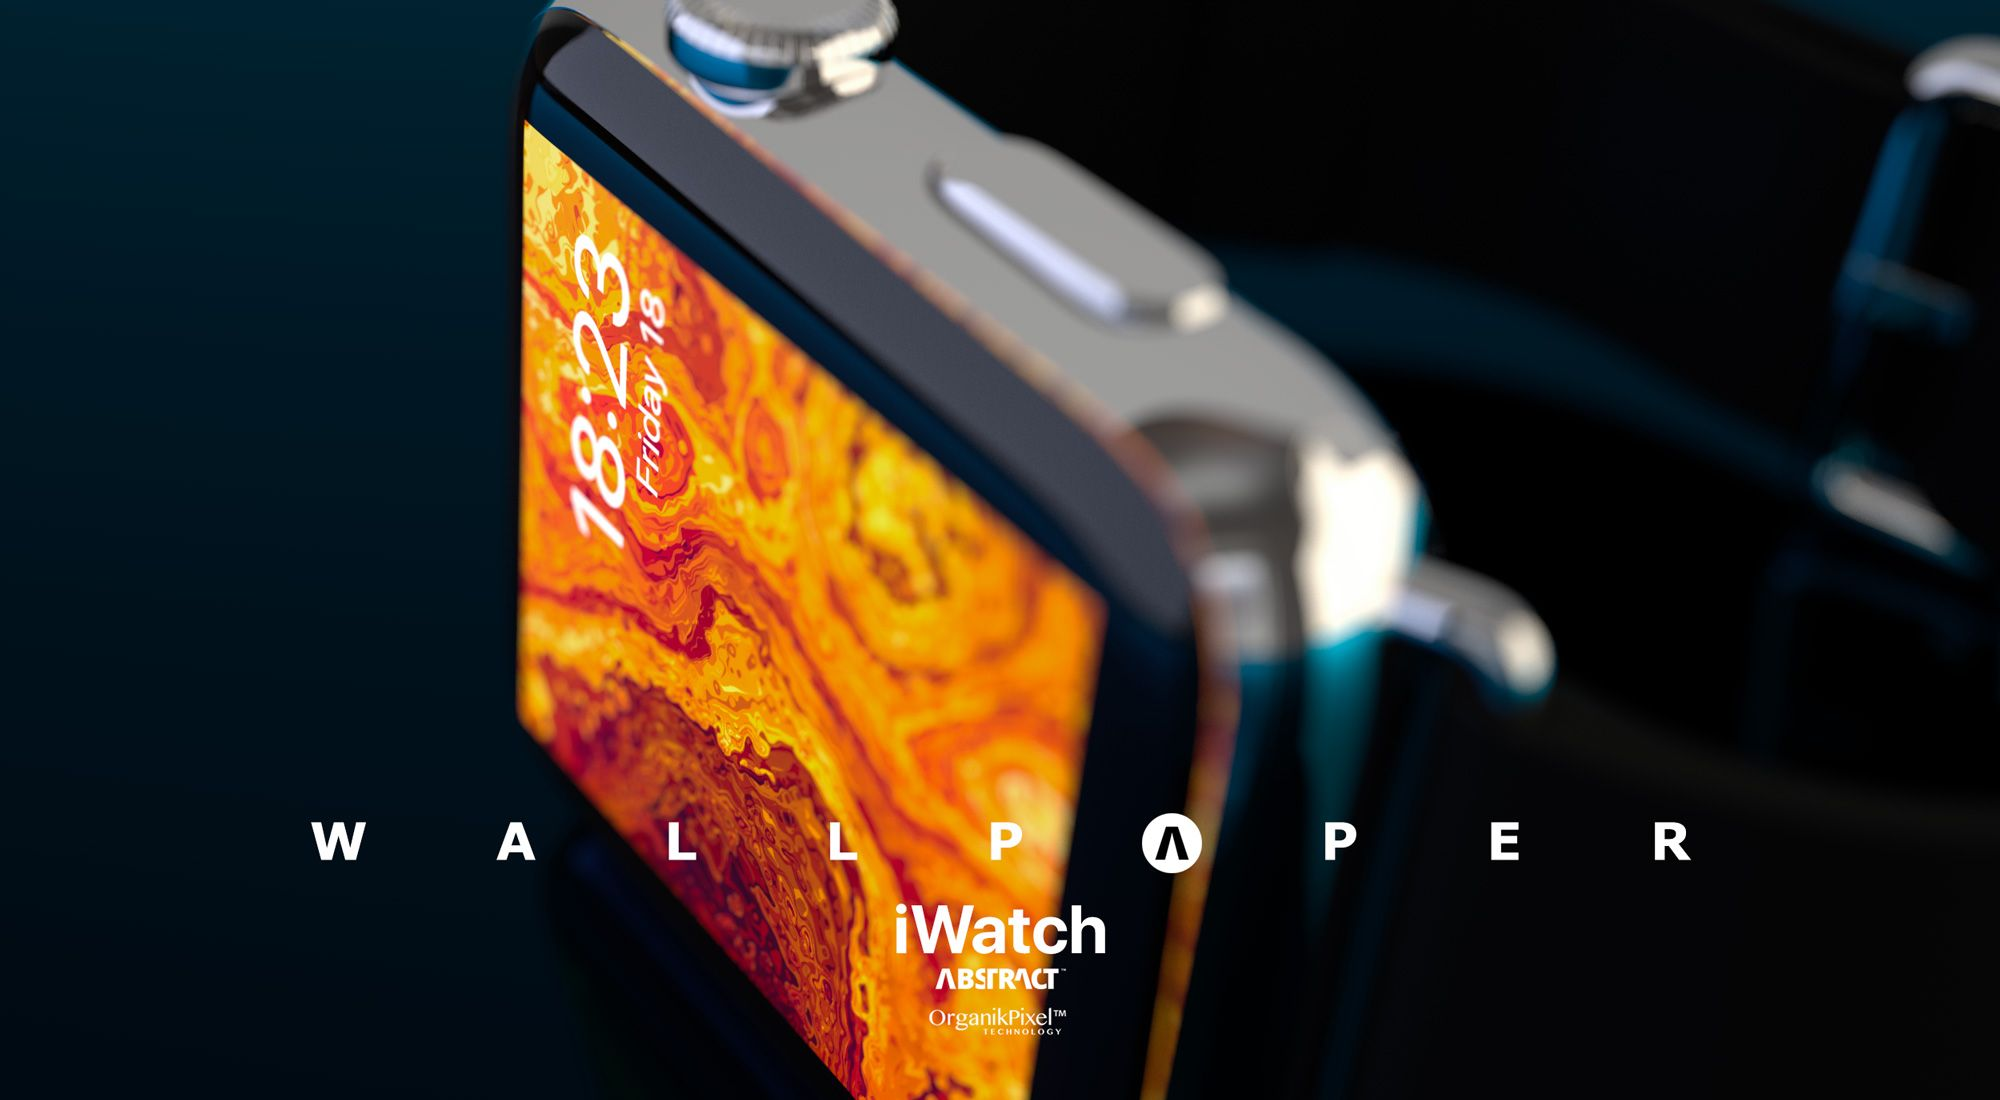 Royal Crown Original Abstract Wallpaper for iWatch